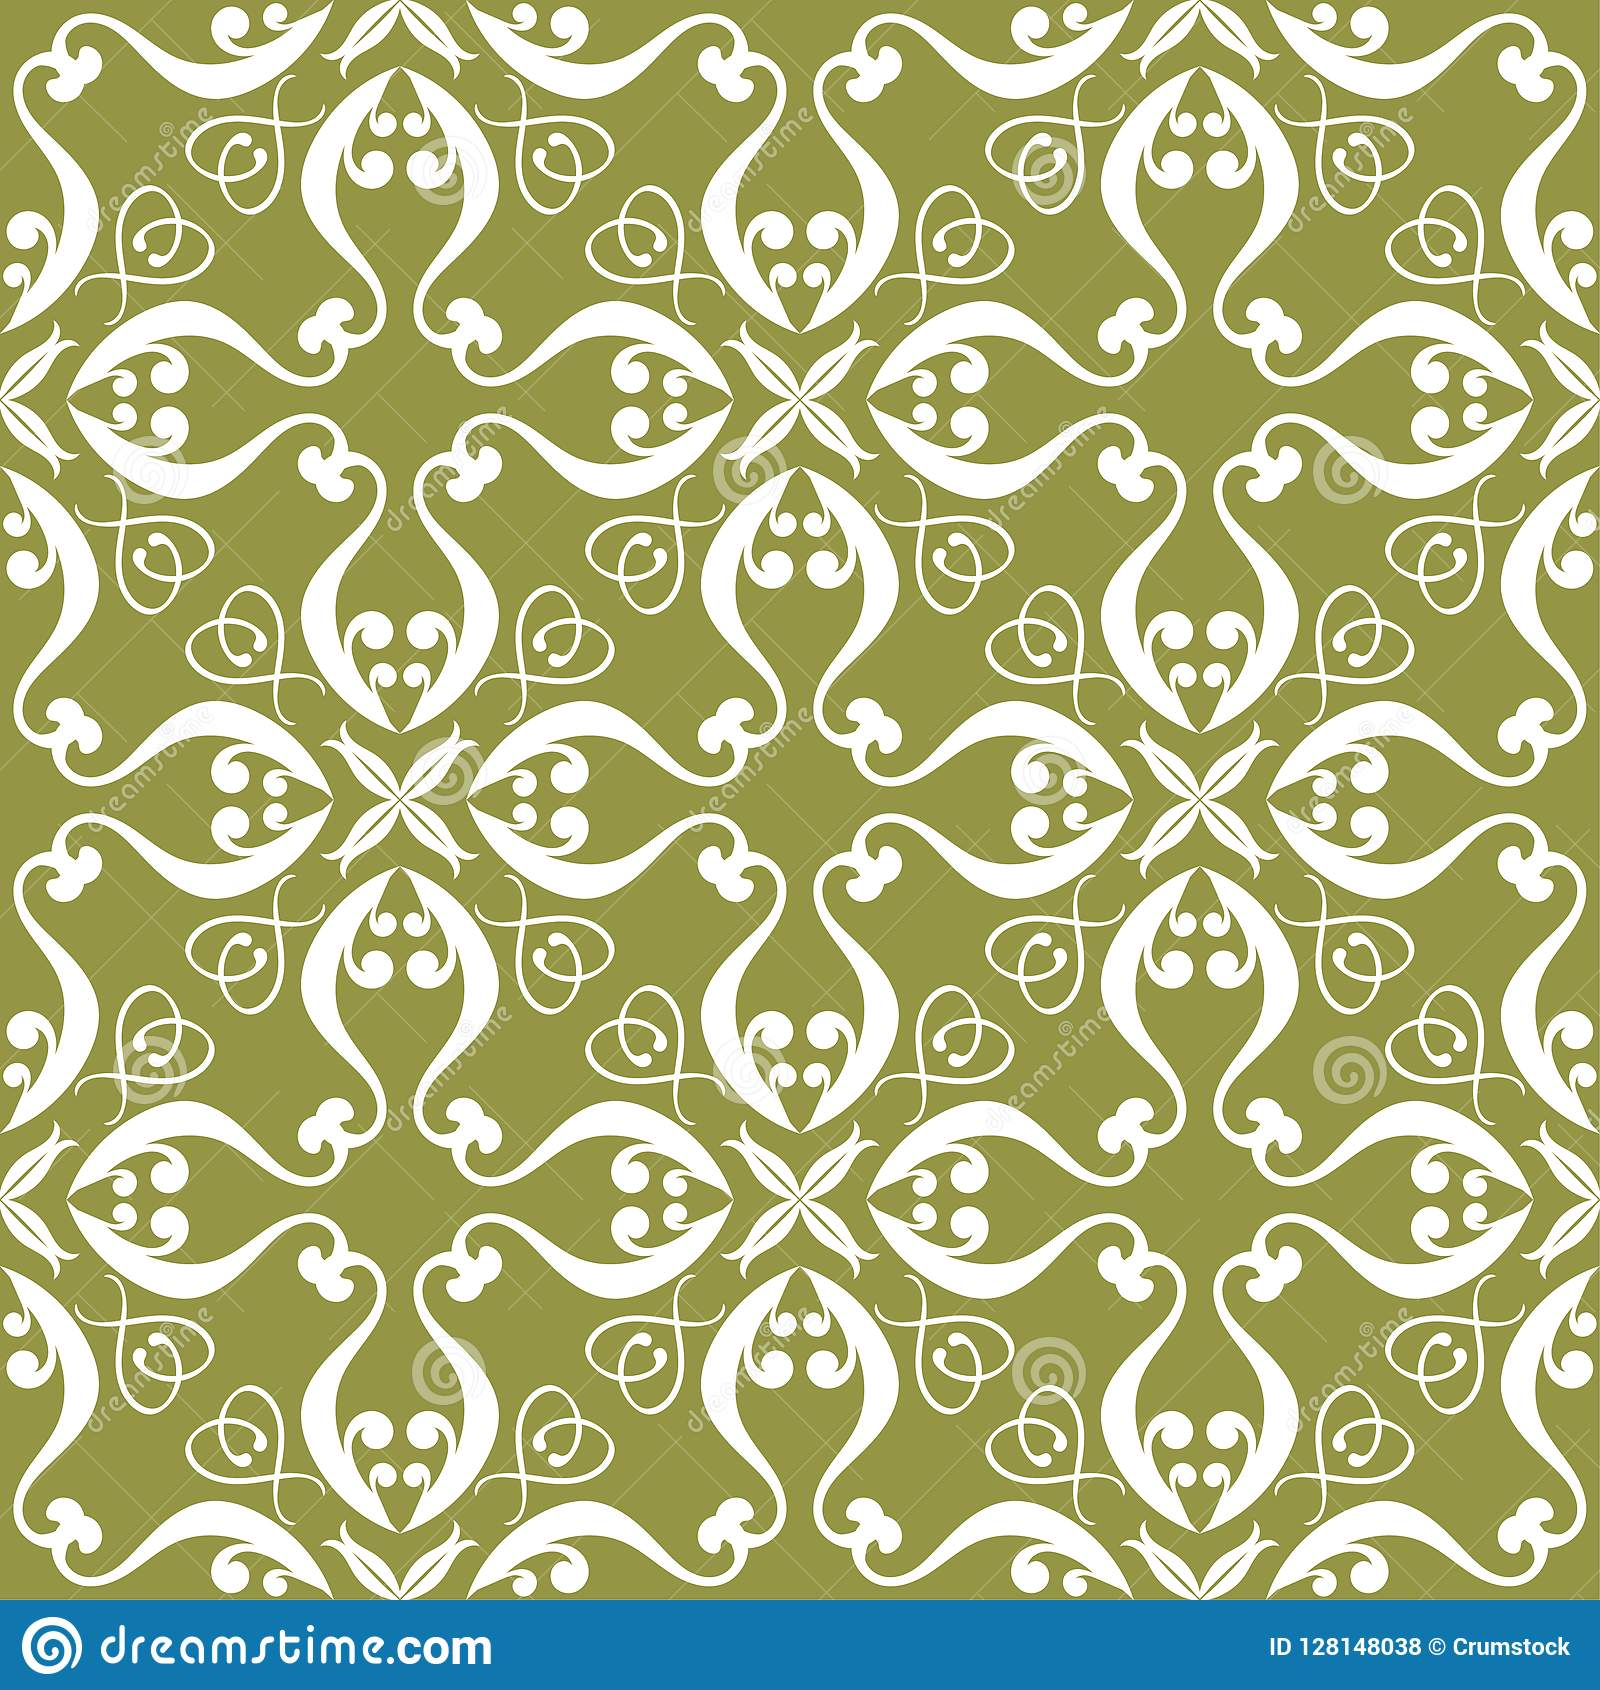 White flower on olive green background. Seamless pattern